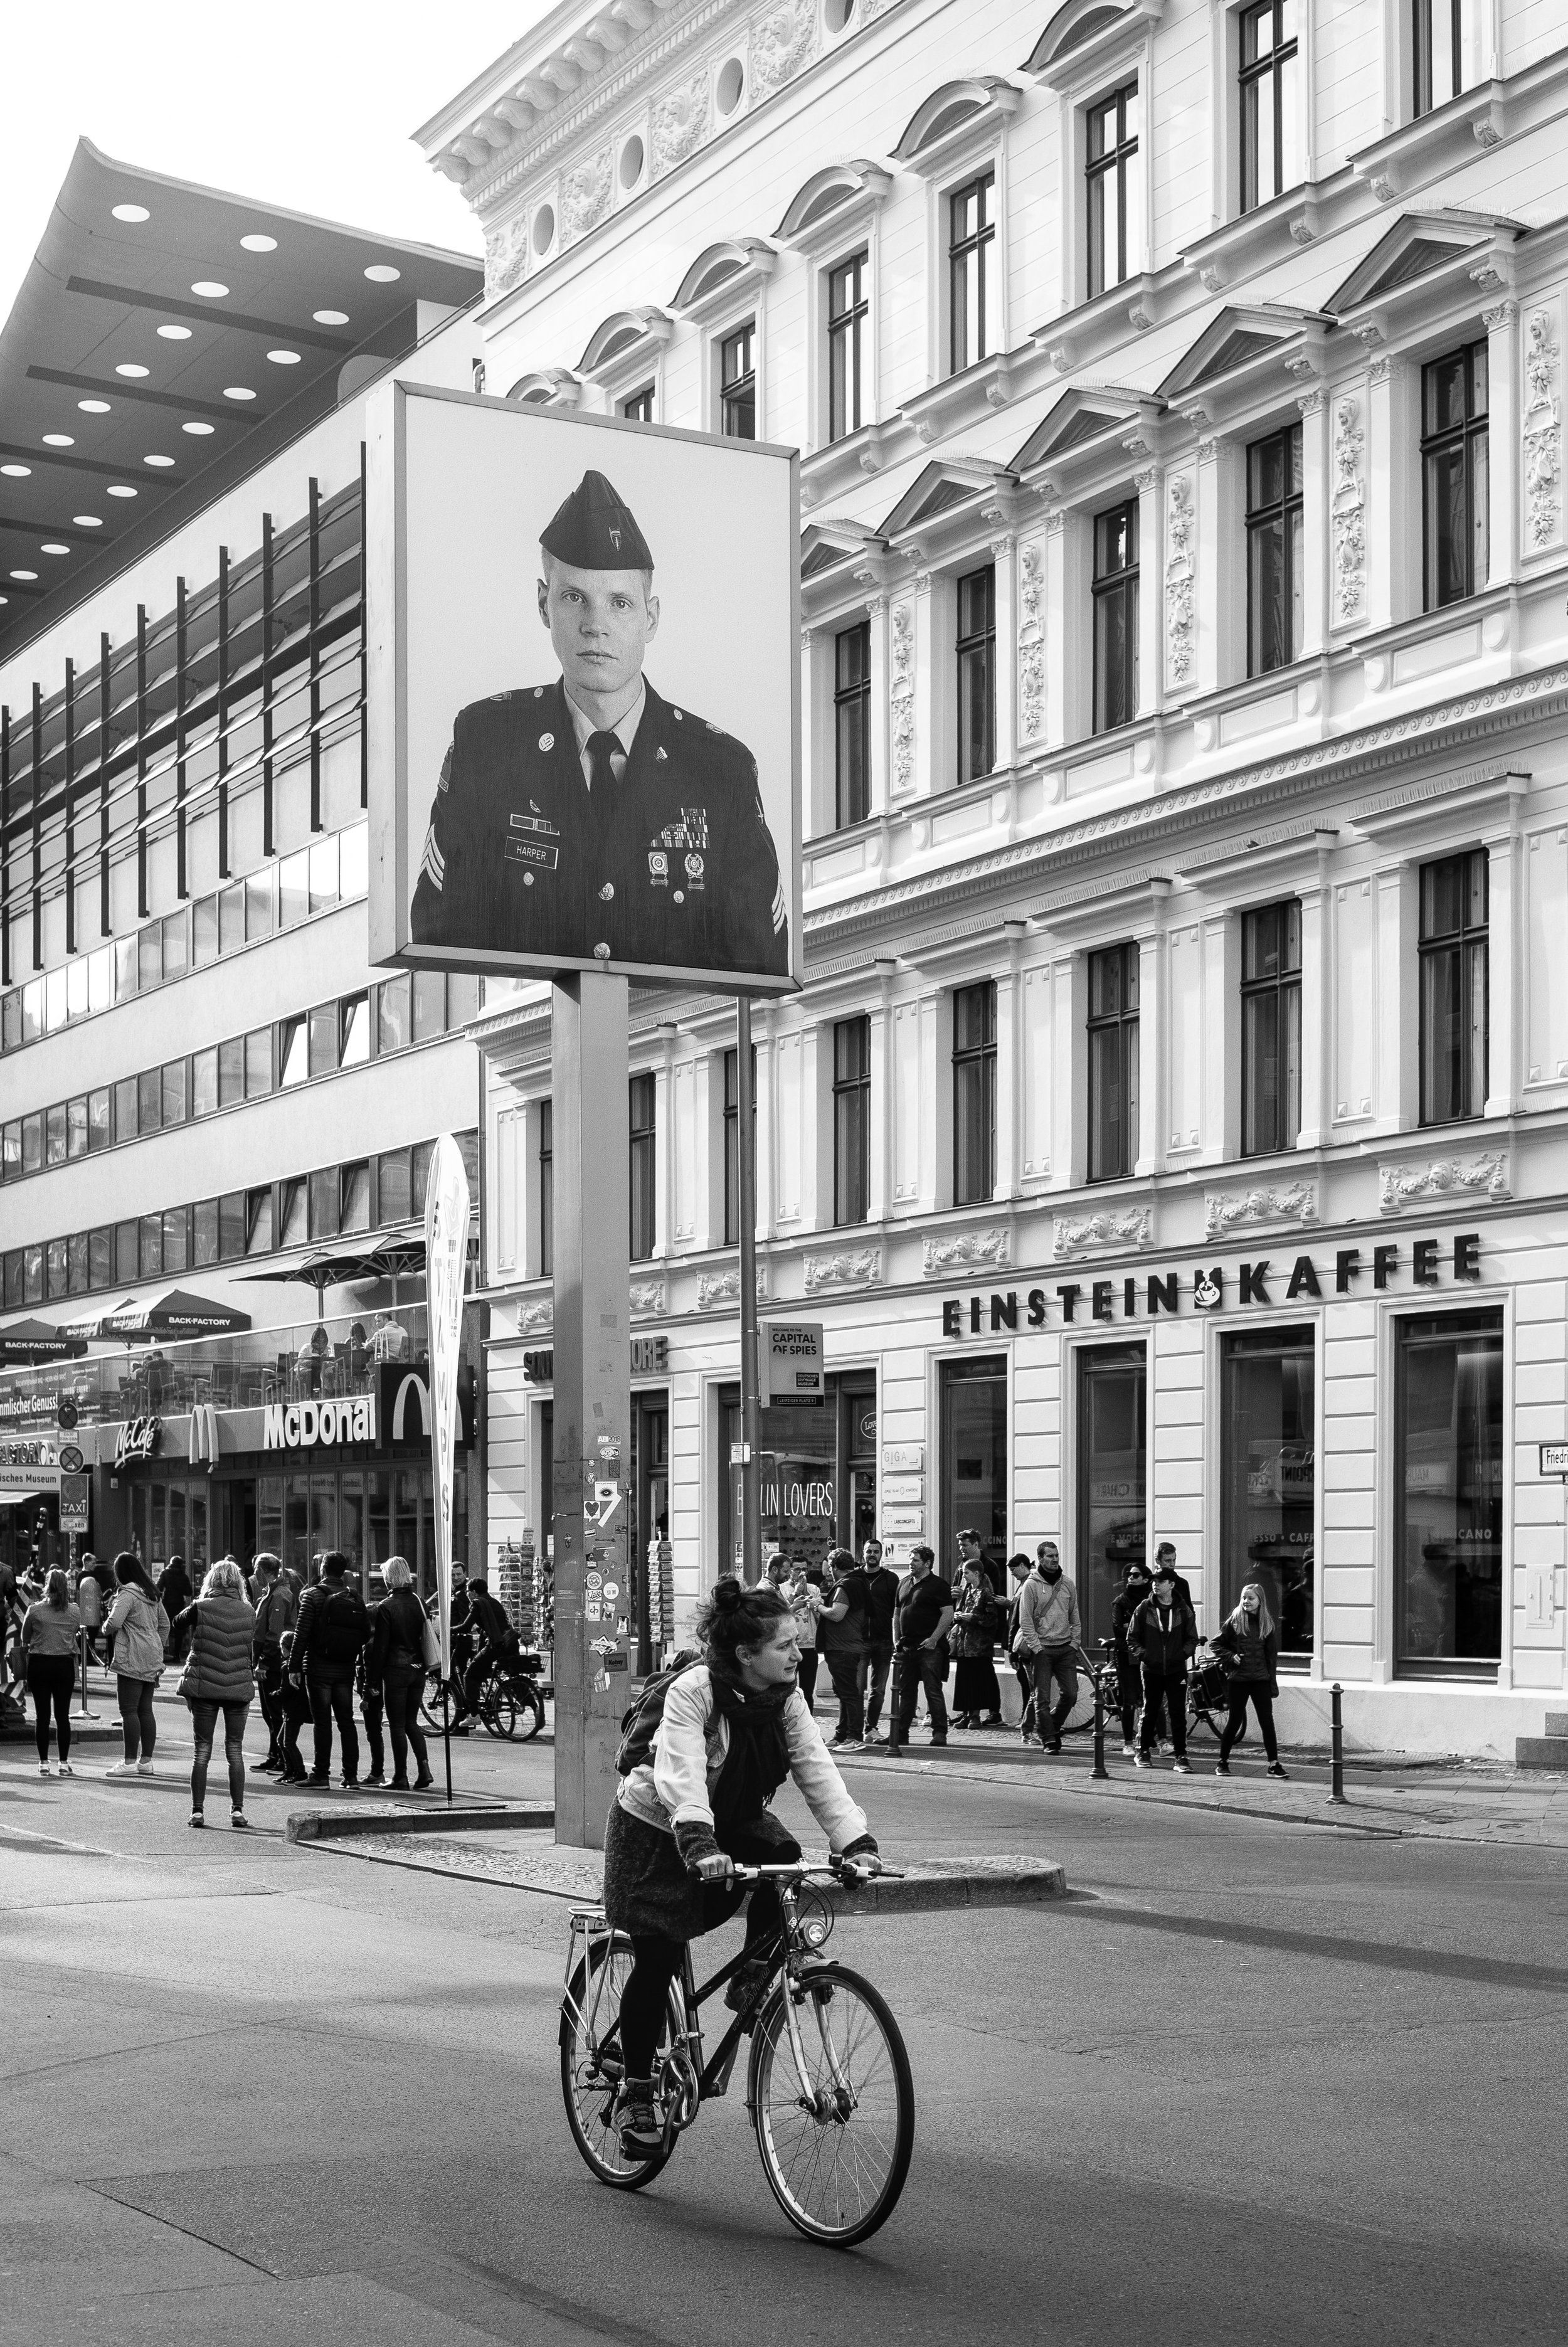 Checkpoint Charlie, Berlin. Germany. 2018.